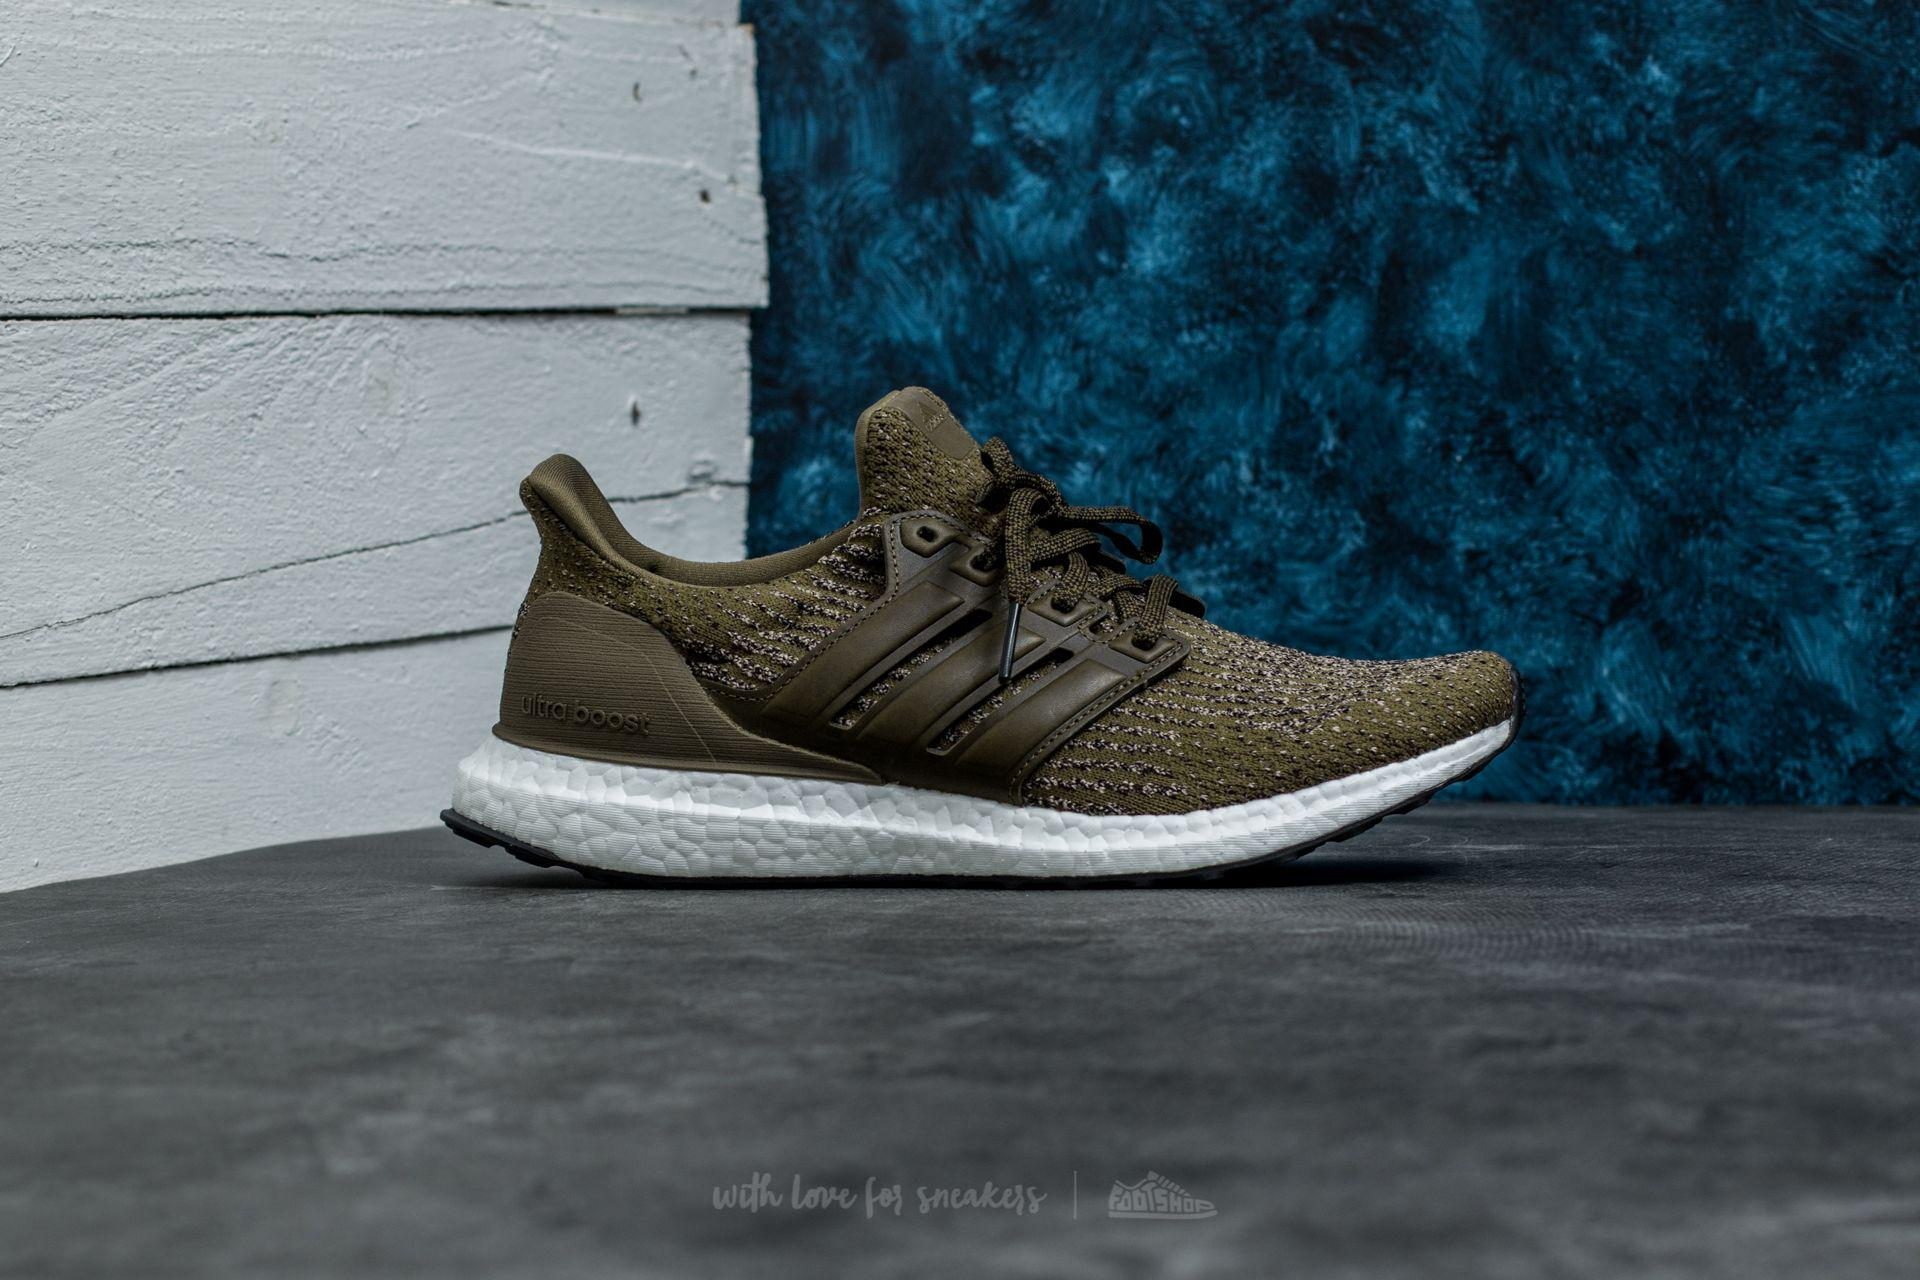 0f43a197cfc20 Lyst - Footshop Adidas Ultraboost Trace Olive  Trace Khaki for Men